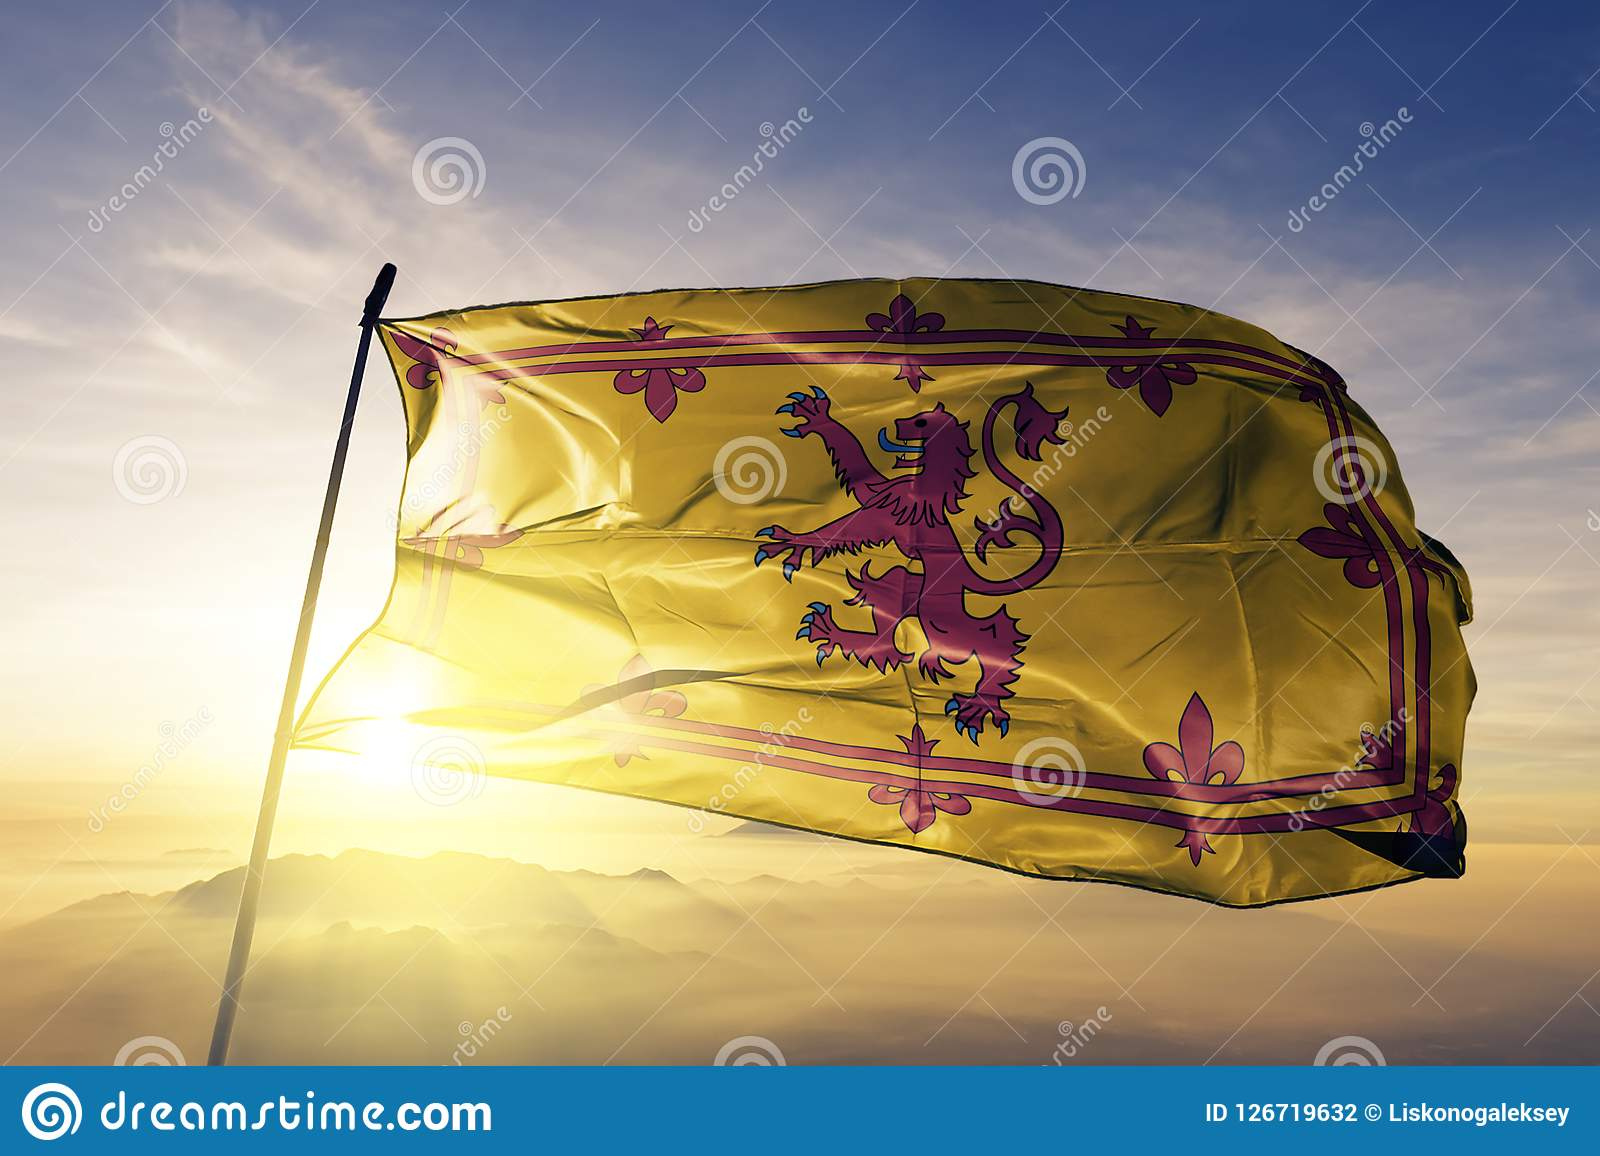 Royal Banner of Scotland flag textile cloth fabric waving on the top sunrise mist fog